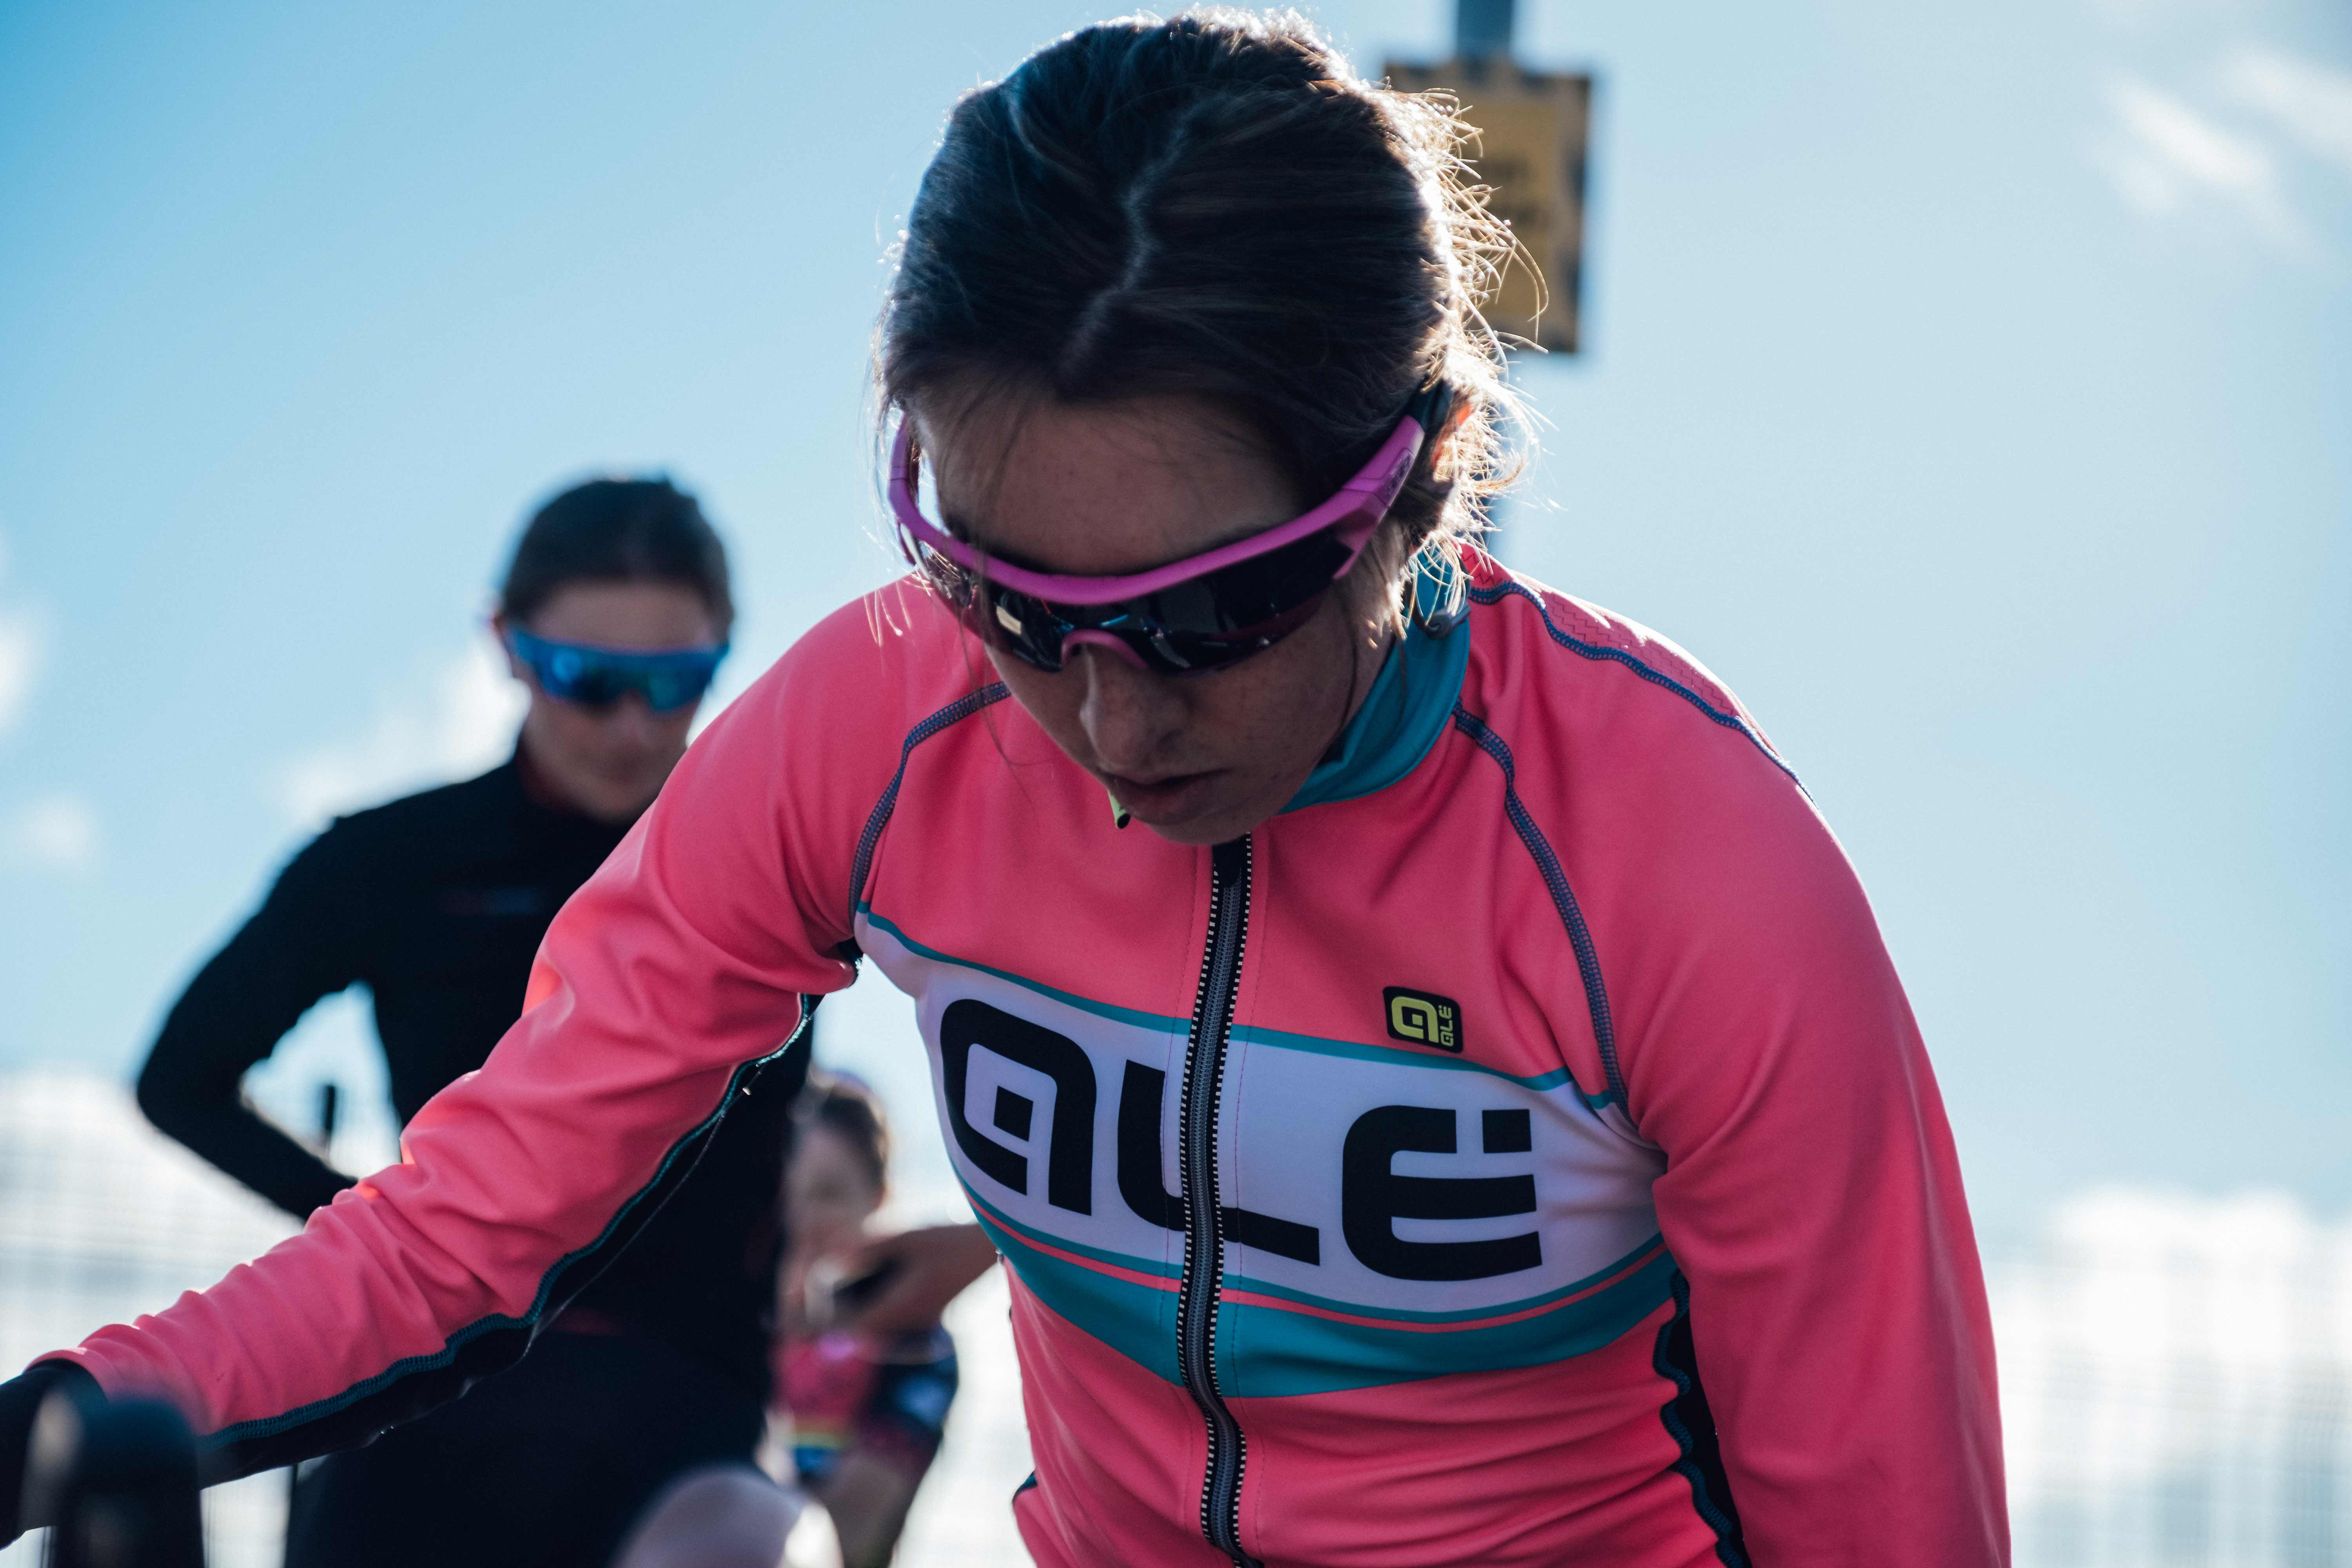 Sophie Wright kitted out in cycling gear